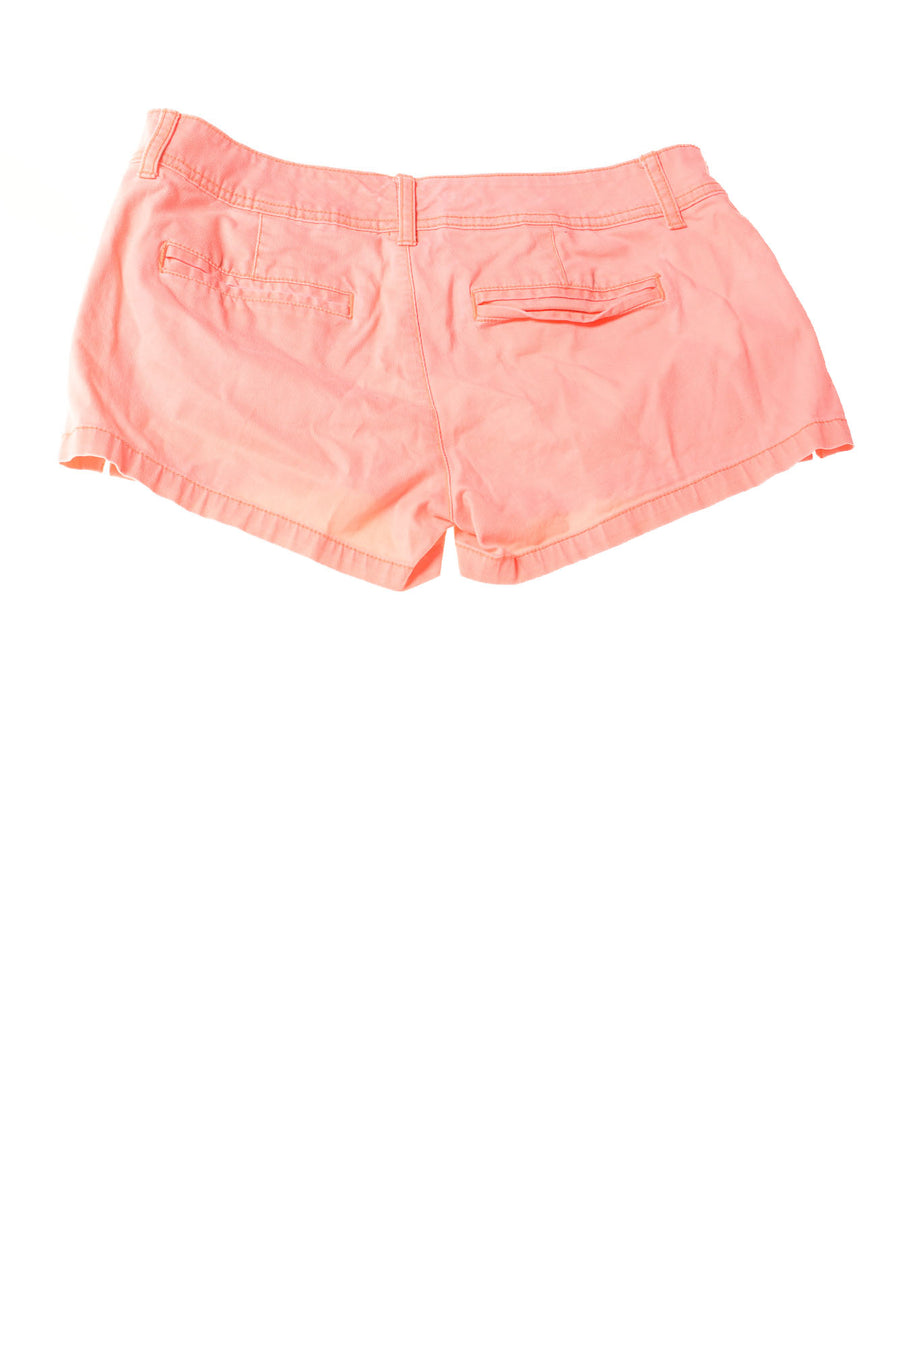 USED Arizona Jeans Women's Shorts 7 Neon Pink